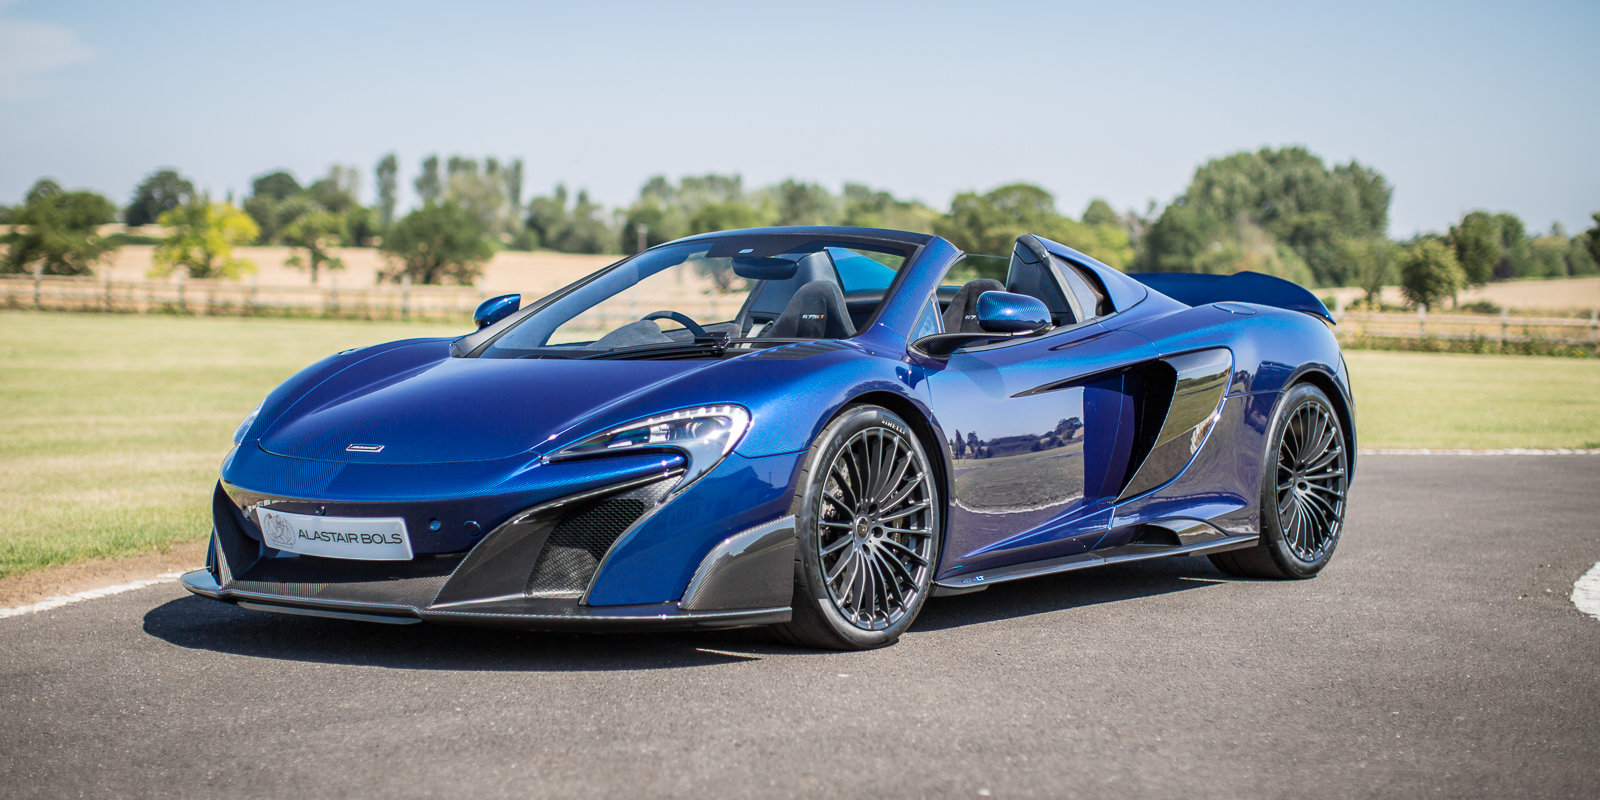 2012 McLaren 675LT Spider Carbon Series in Metallic blue clear For Sale (picture 5 of 6)